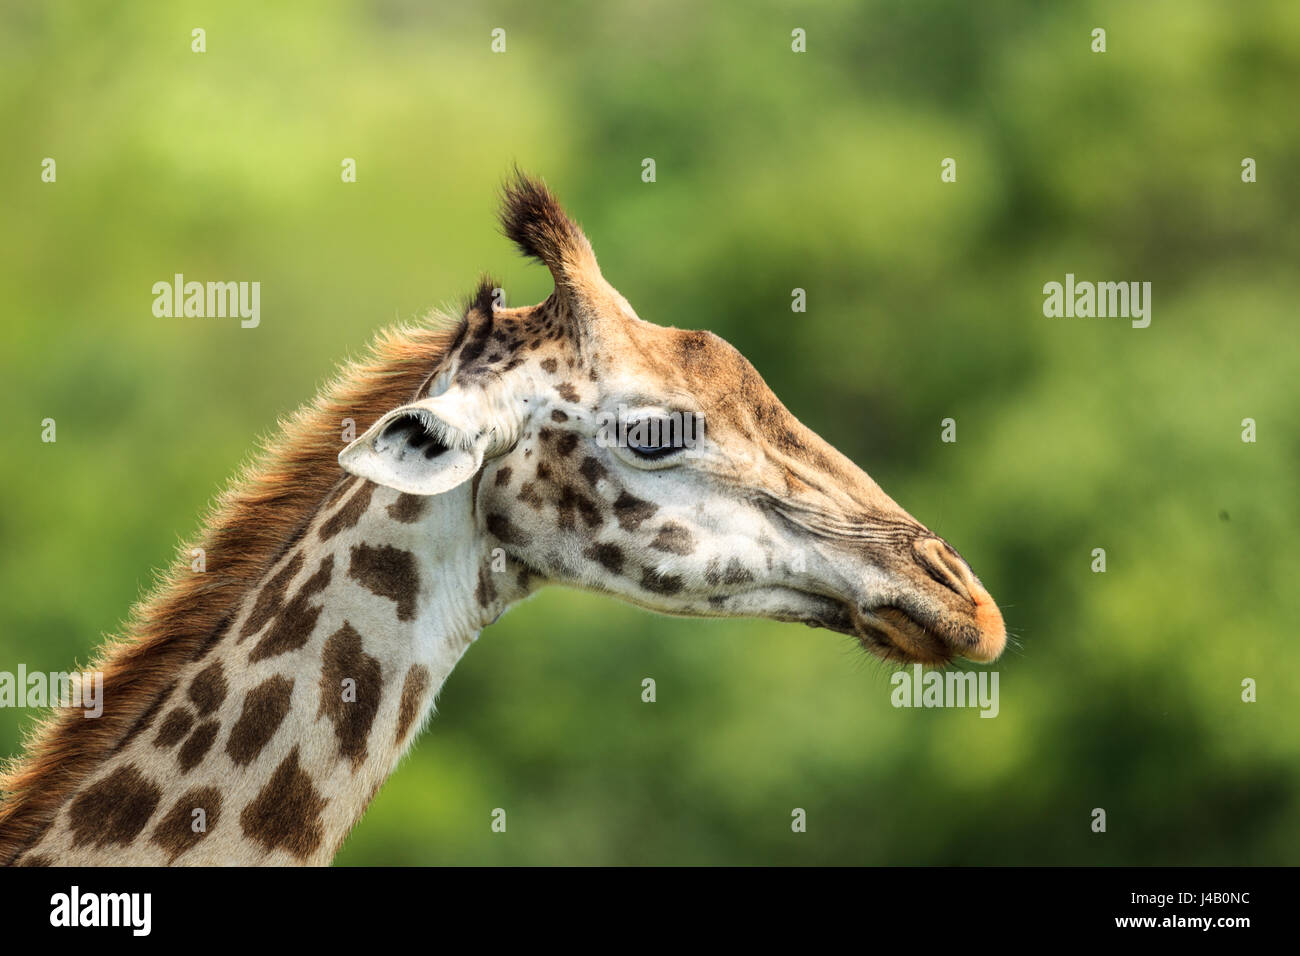 Masai Giraffe up close - Stock Image